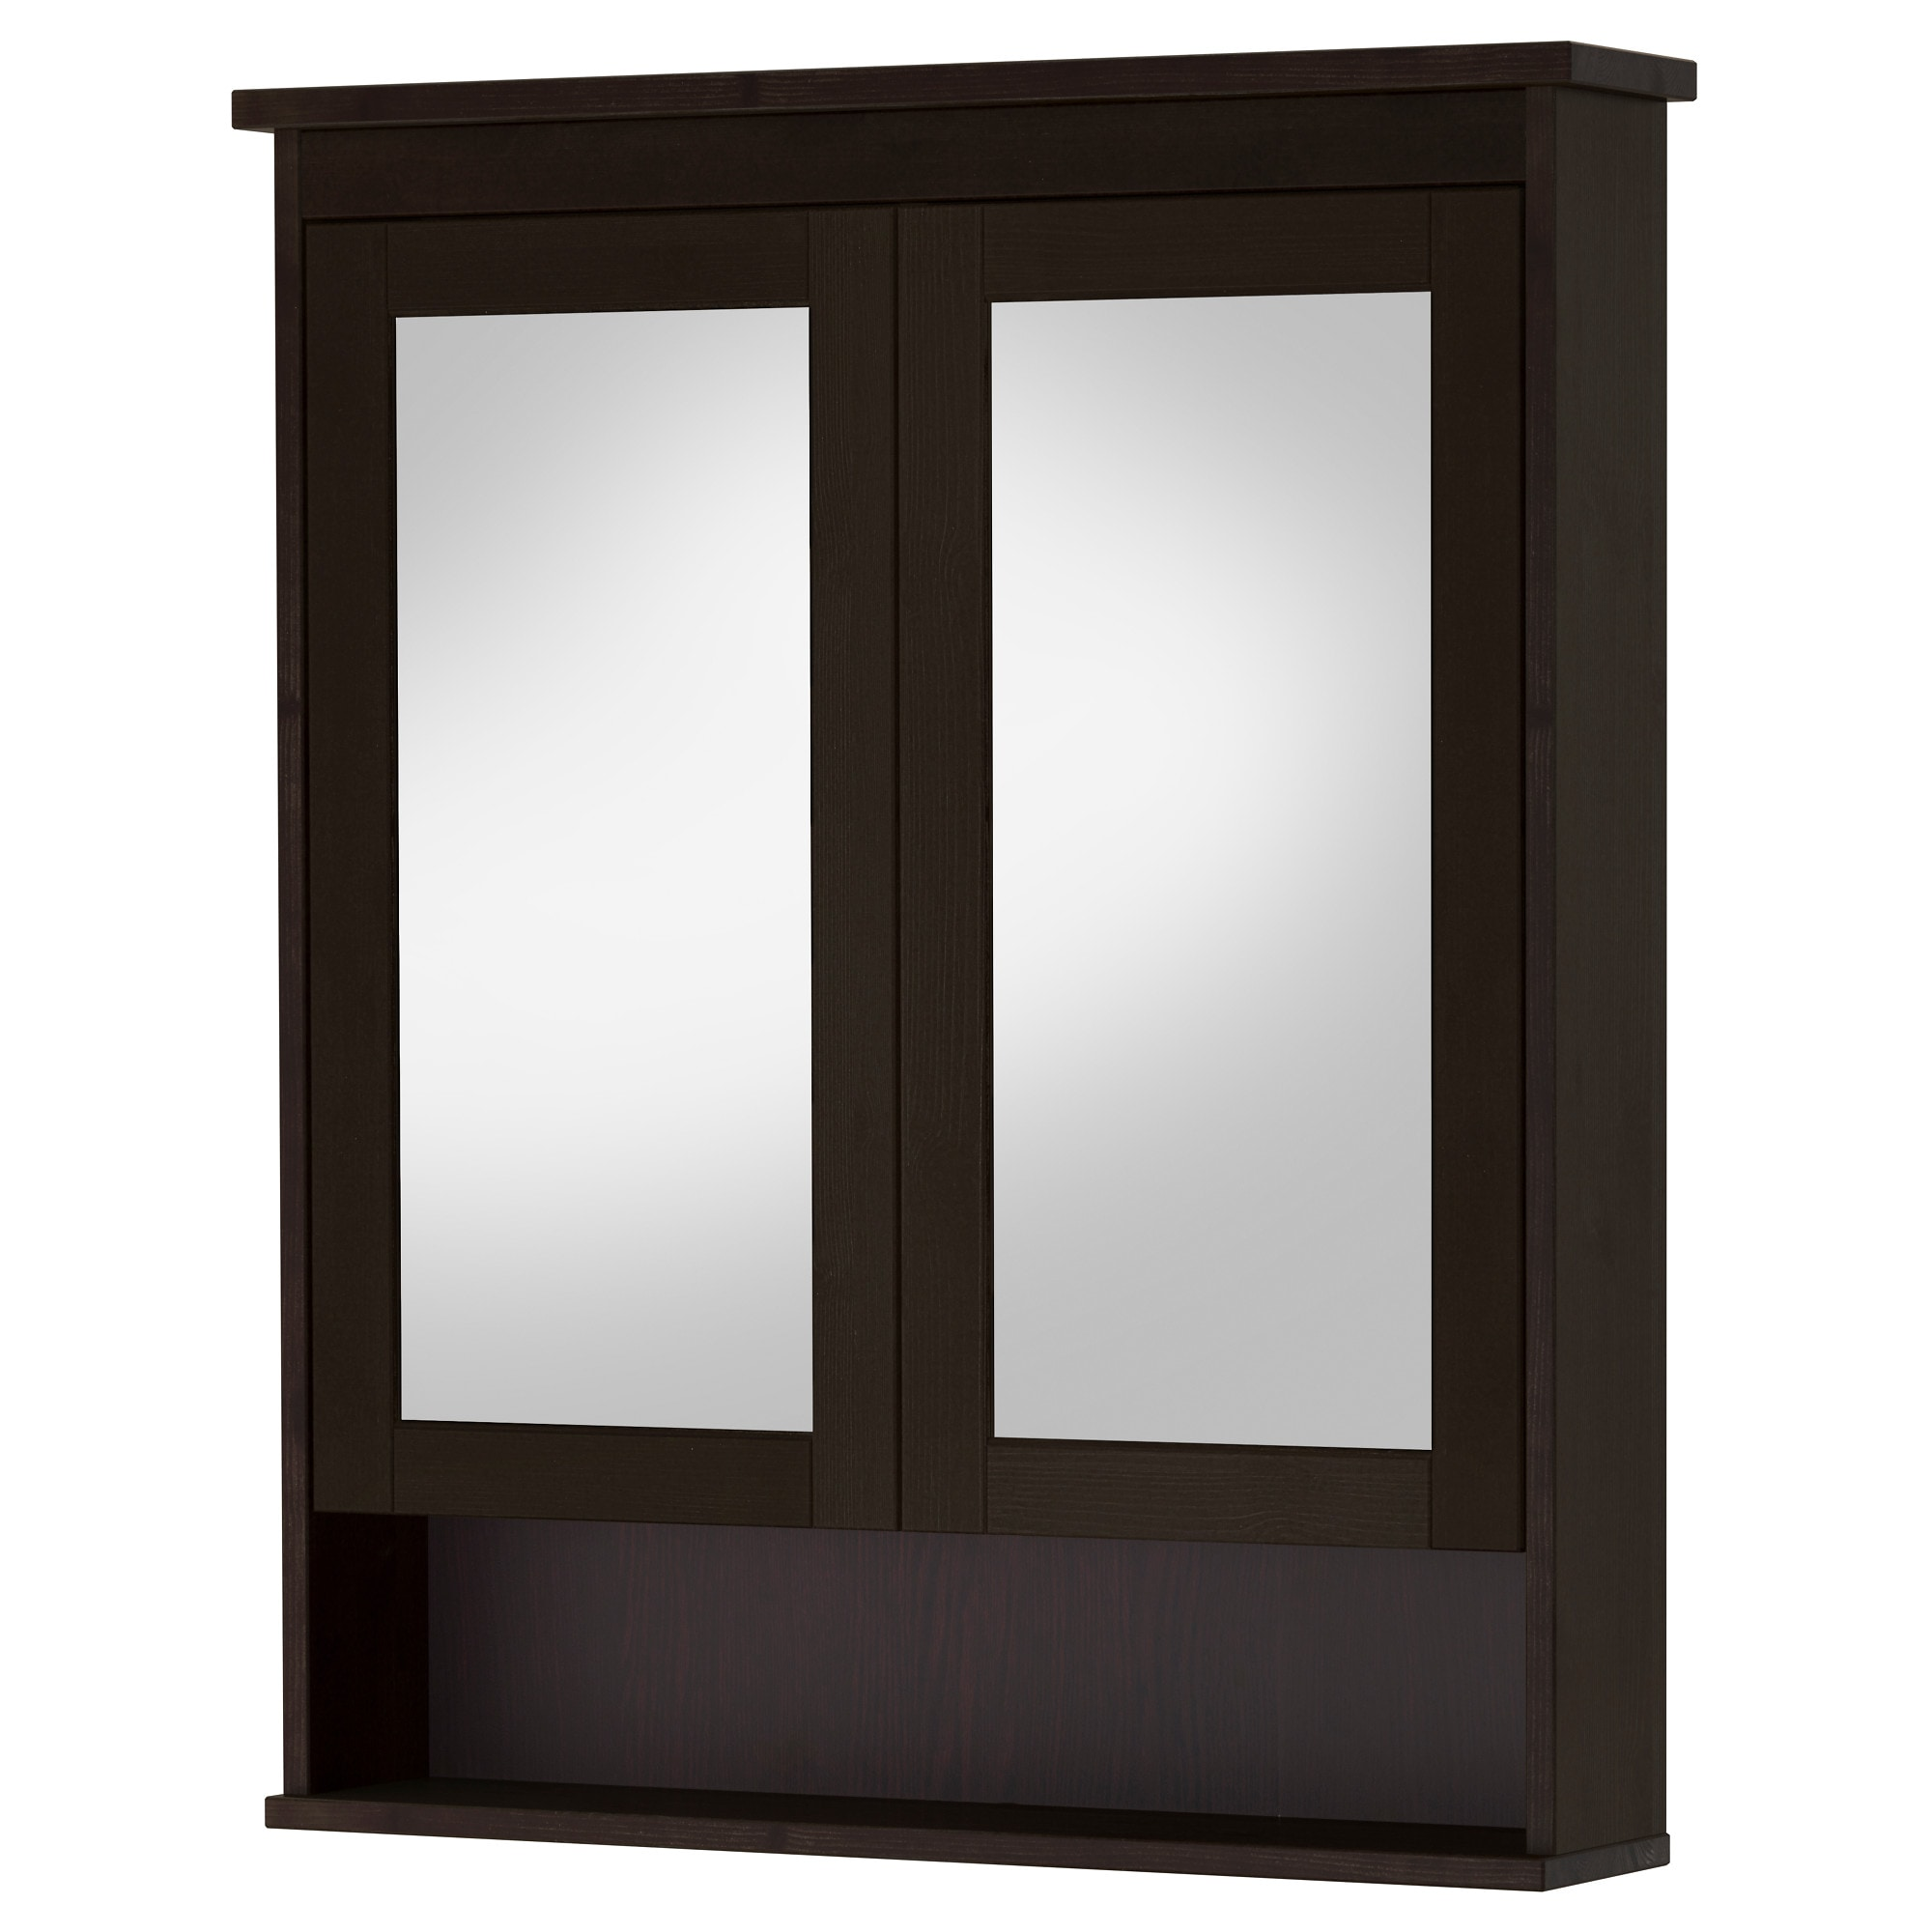 Bathroom Mirror Unit hemnes mirror cabinet with 2 doors - black-brown stain, 32 5/8x6 1